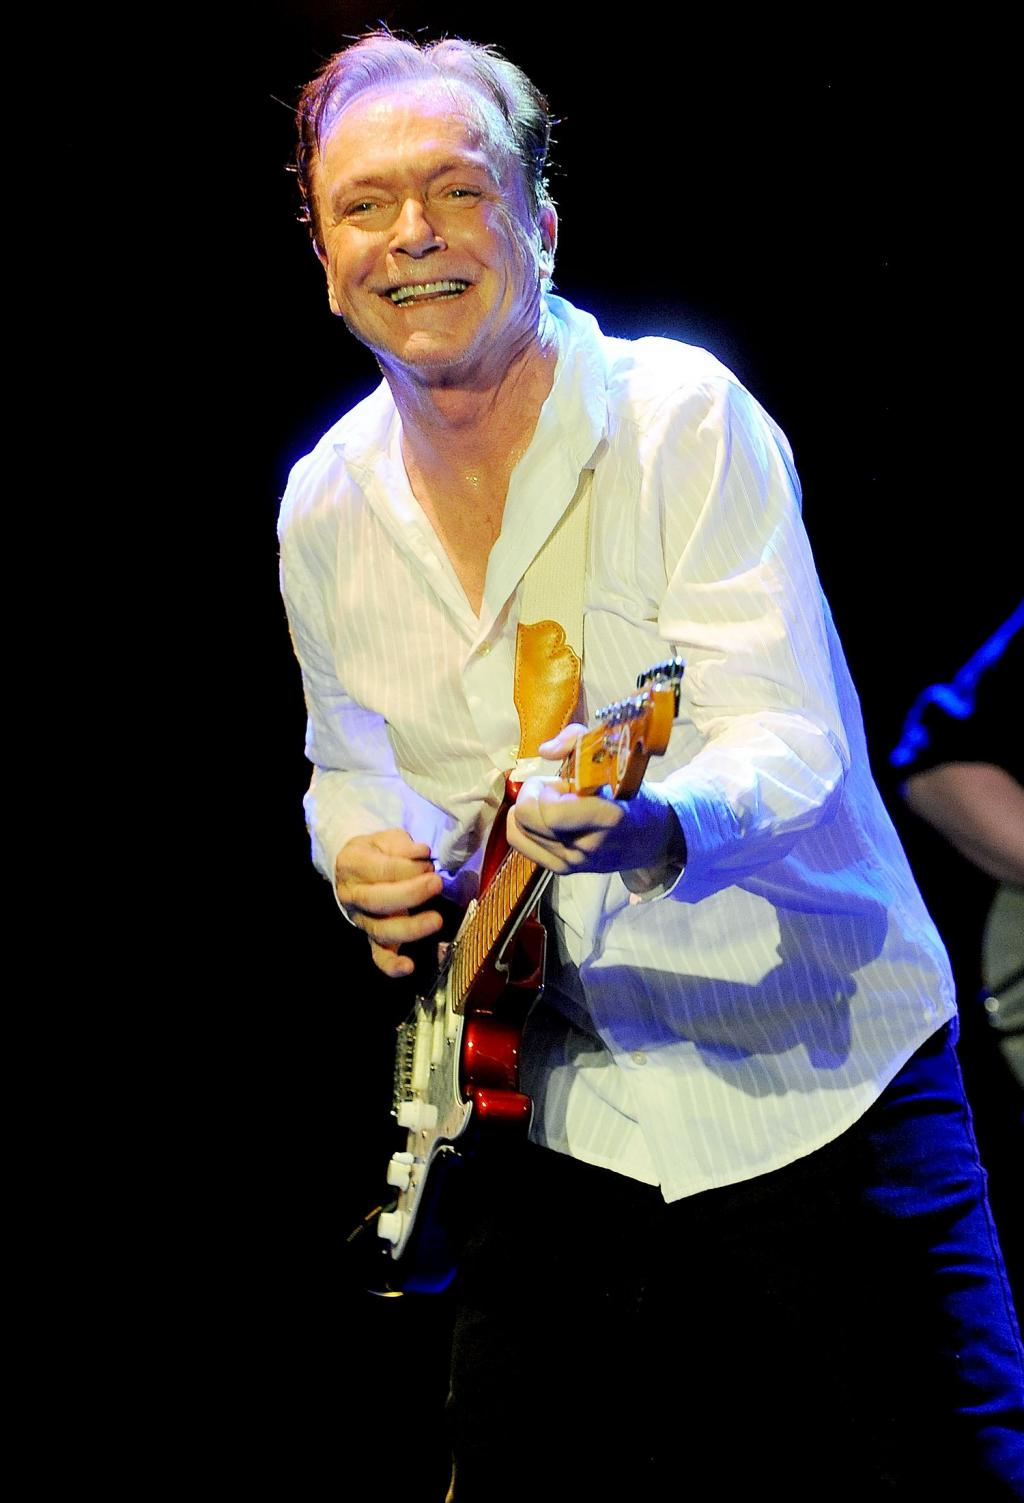 David Cassidy's Final Concert: Star Gives Last Show After Ending Tour Because of Dementia